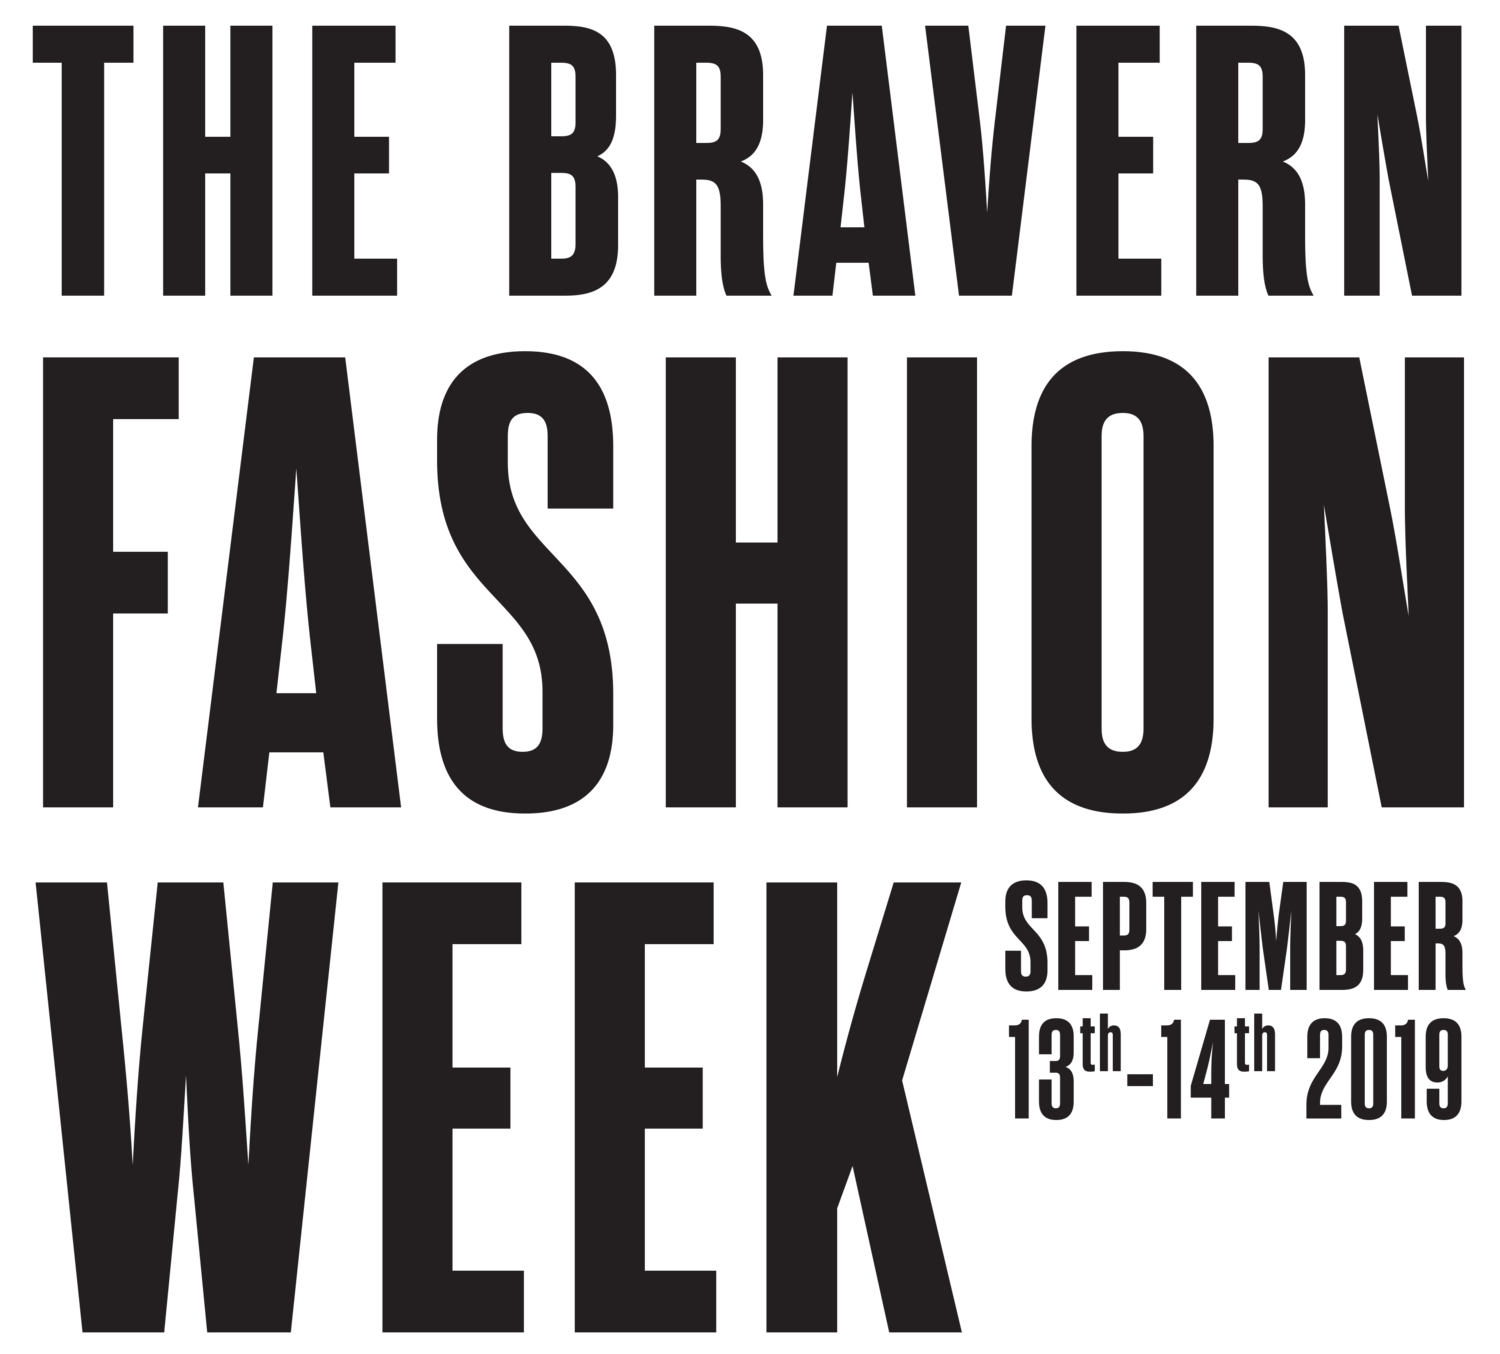 The Bravern Fashion Week